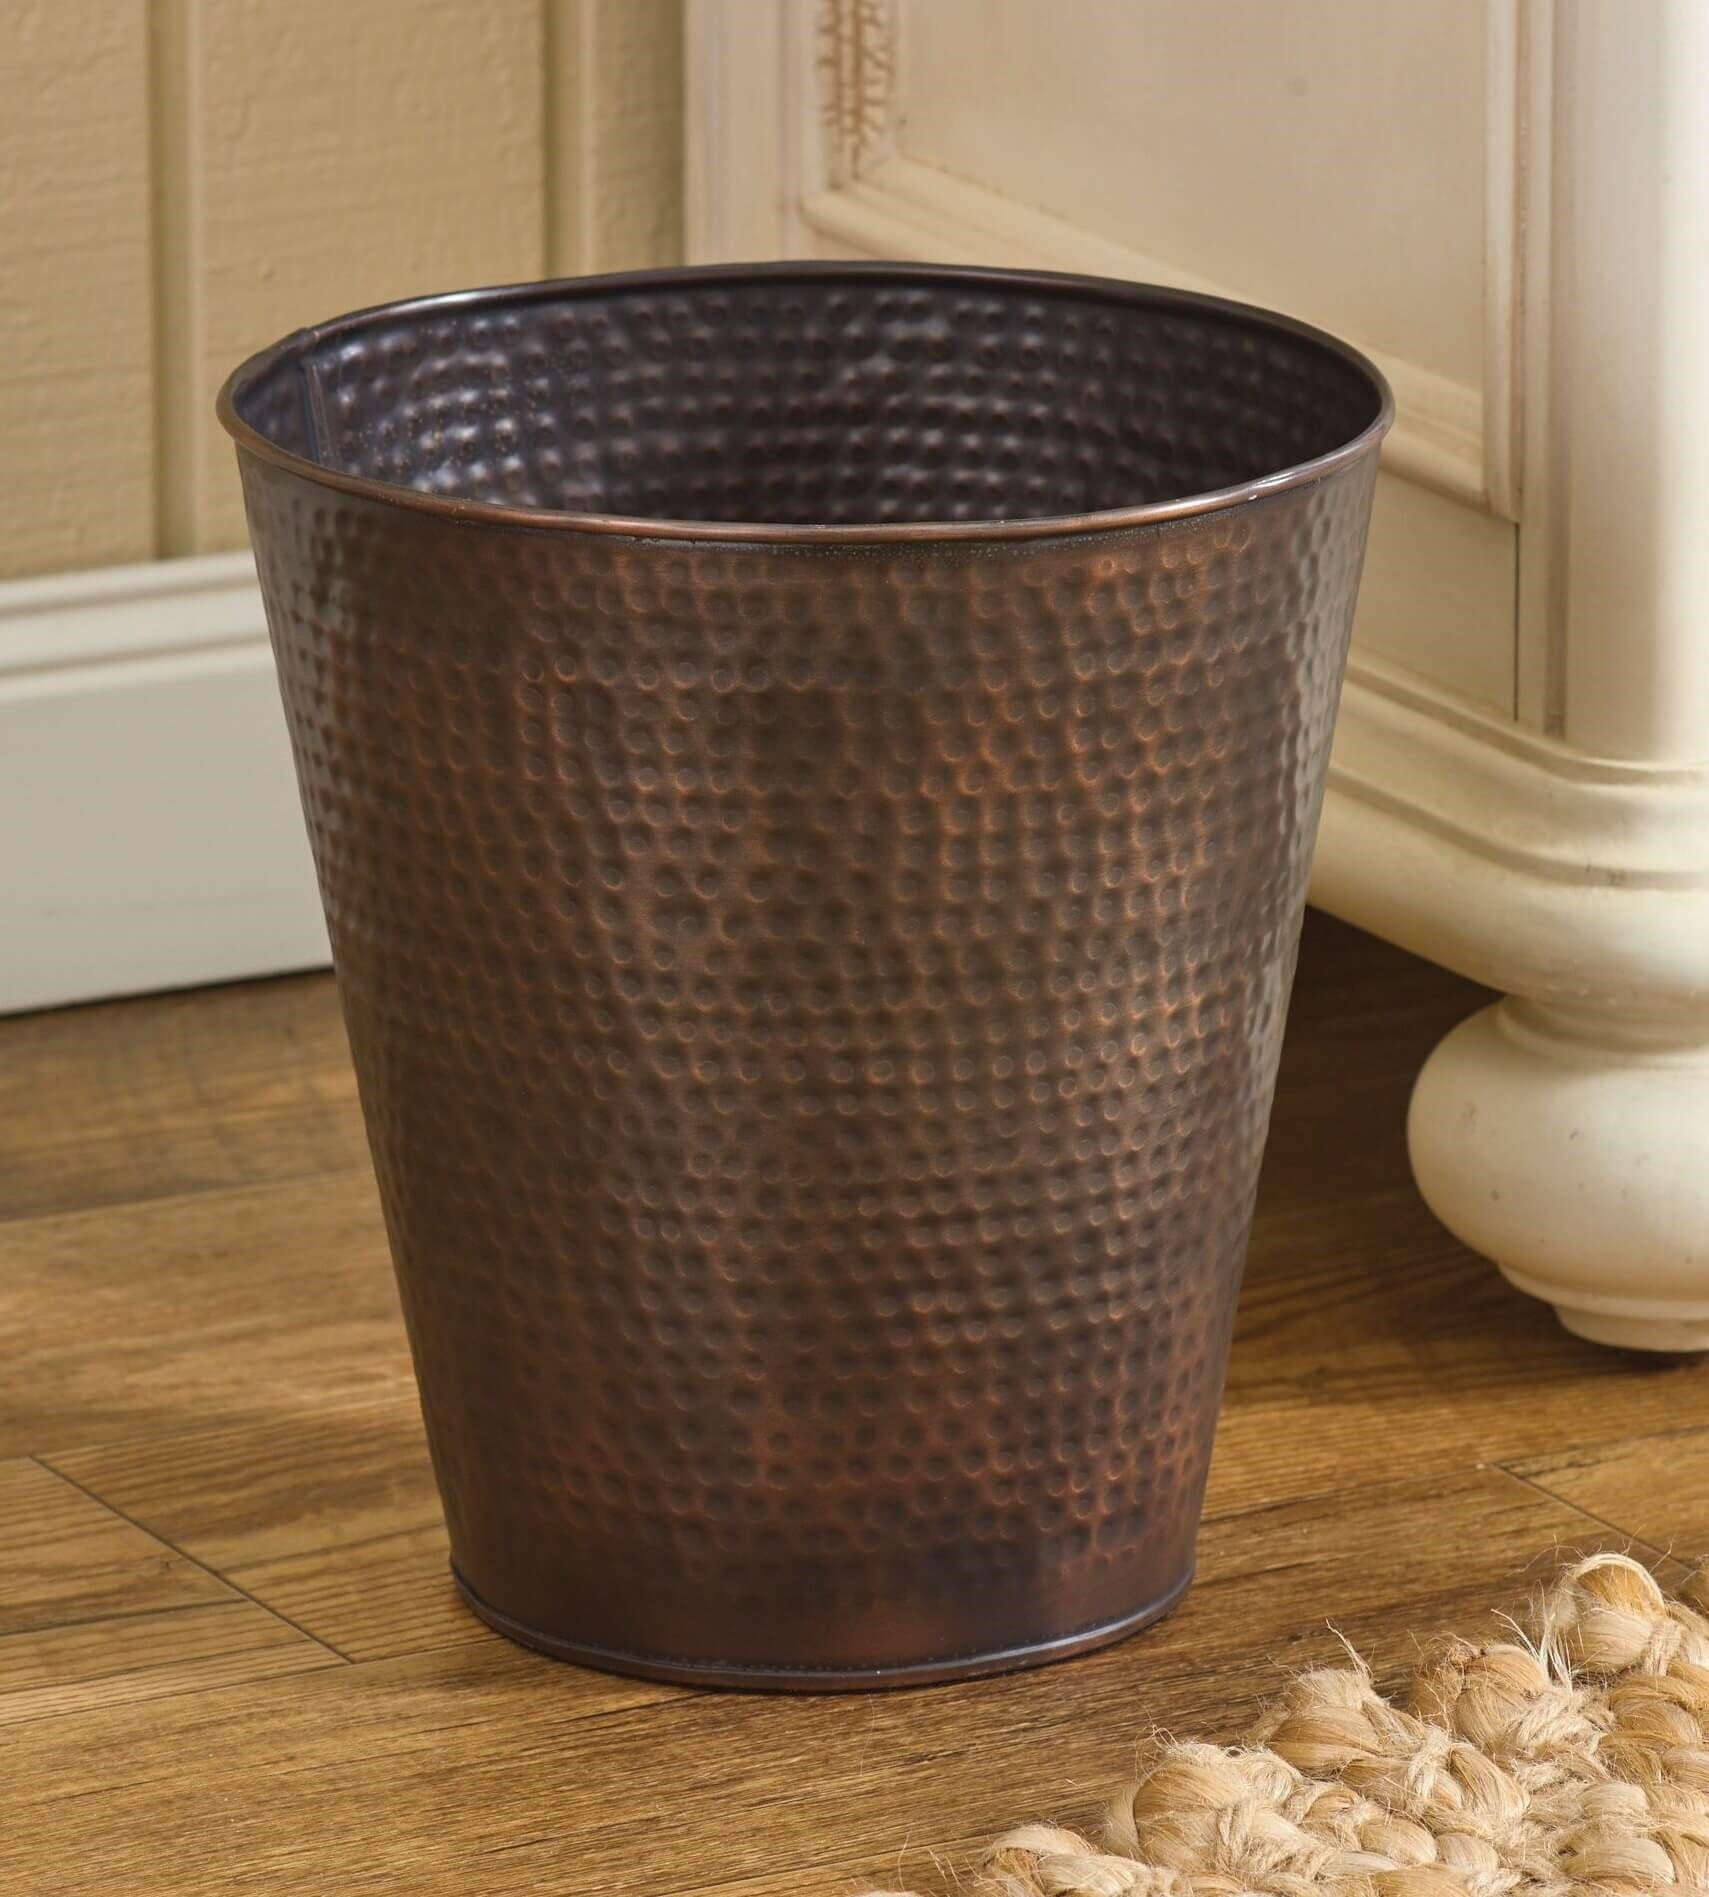 Vintage Kitchen Trash Can Hammered Copper Finish Antique Style Waste Basket